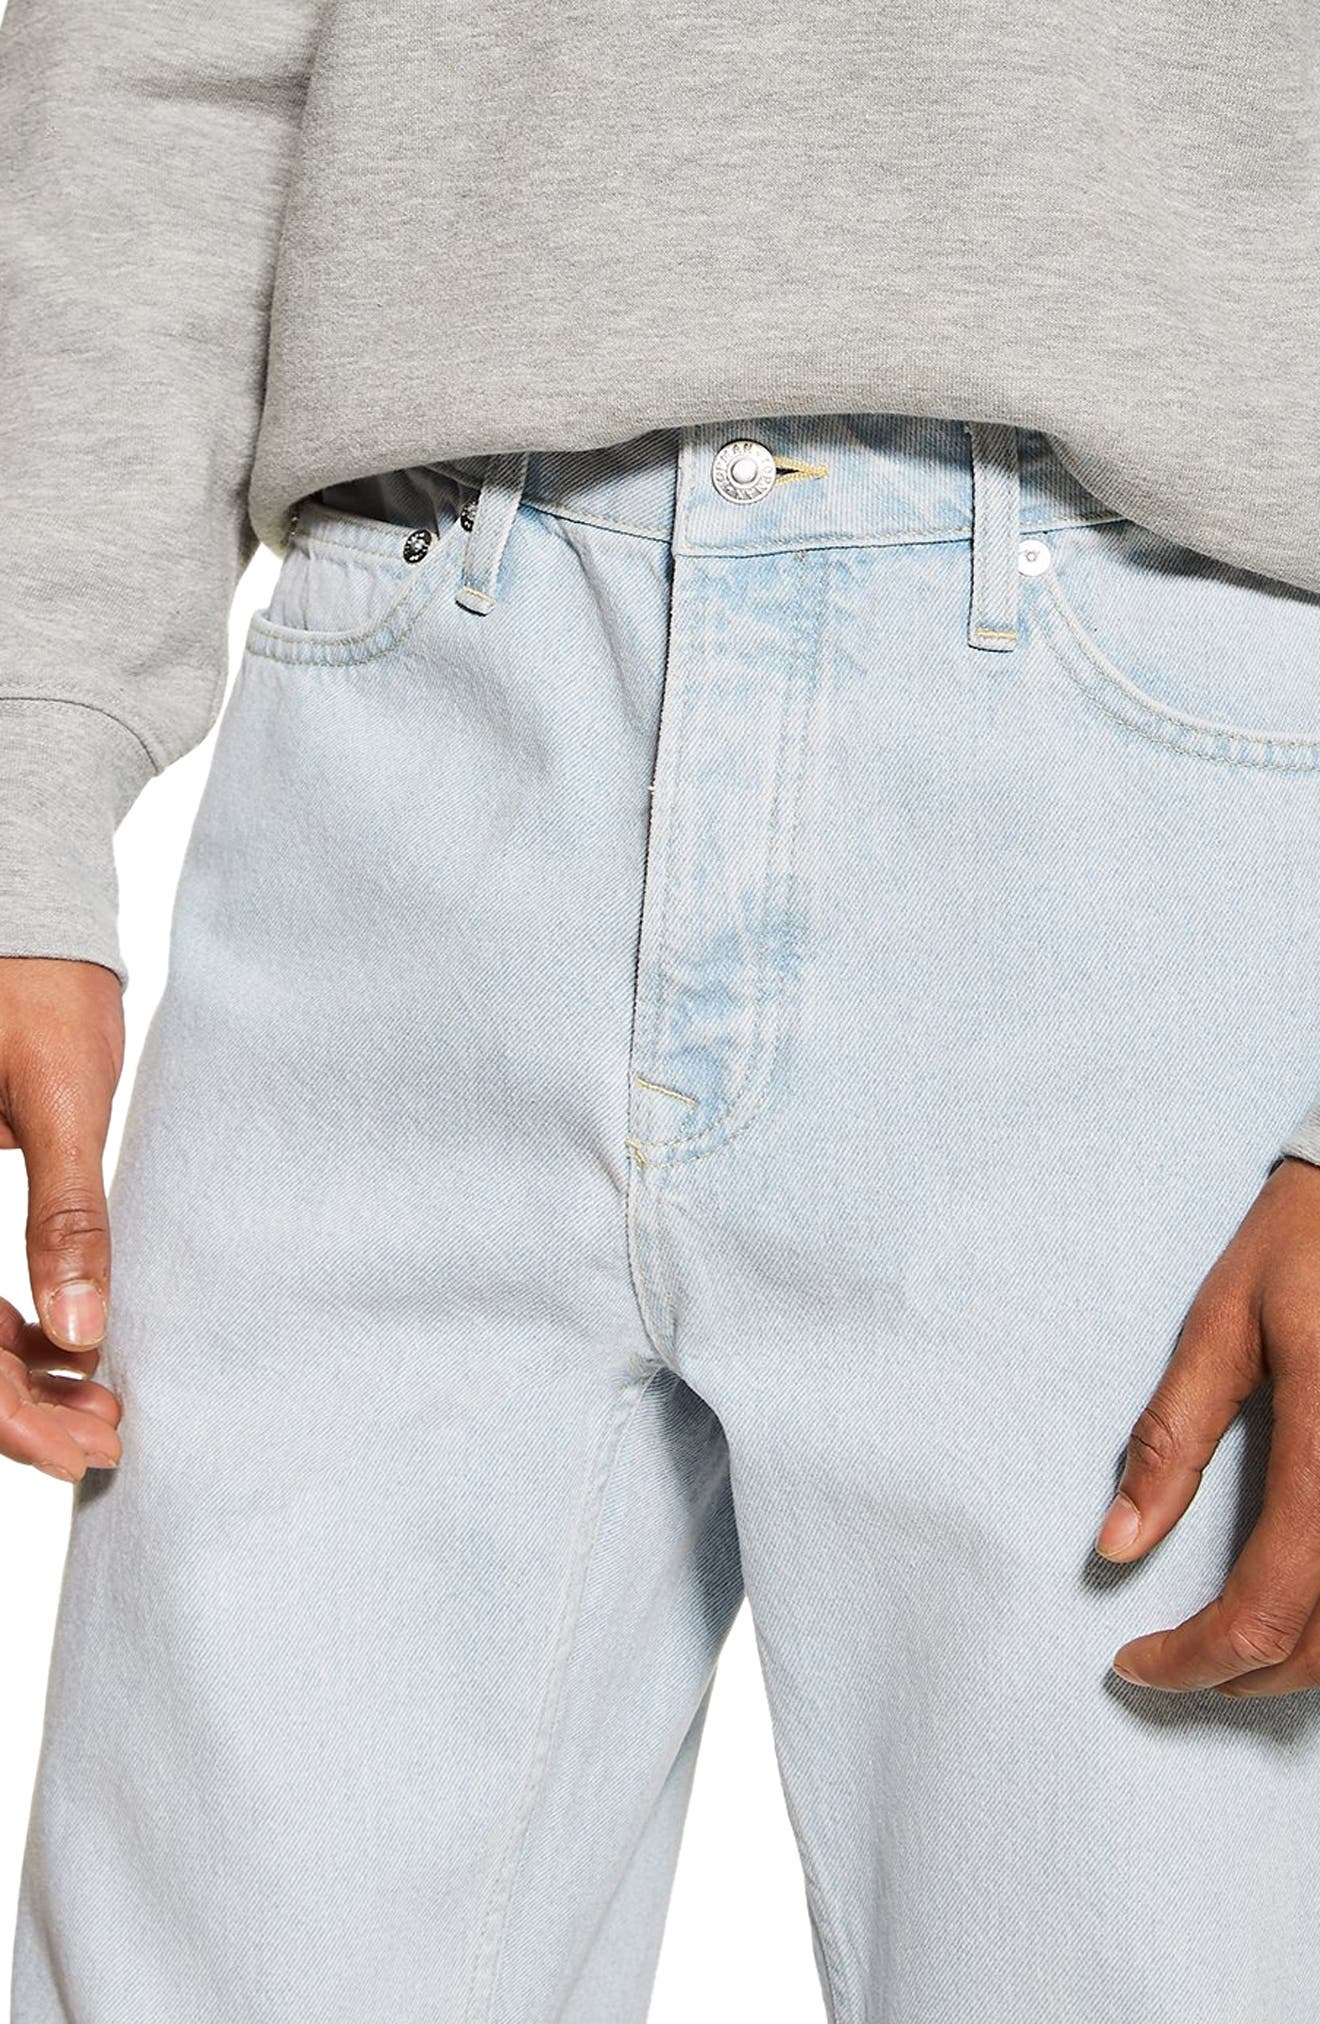 TOPMAN,                             Tapered Fit Jeans,                             Alternate thumbnail 3, color,                             BLUE